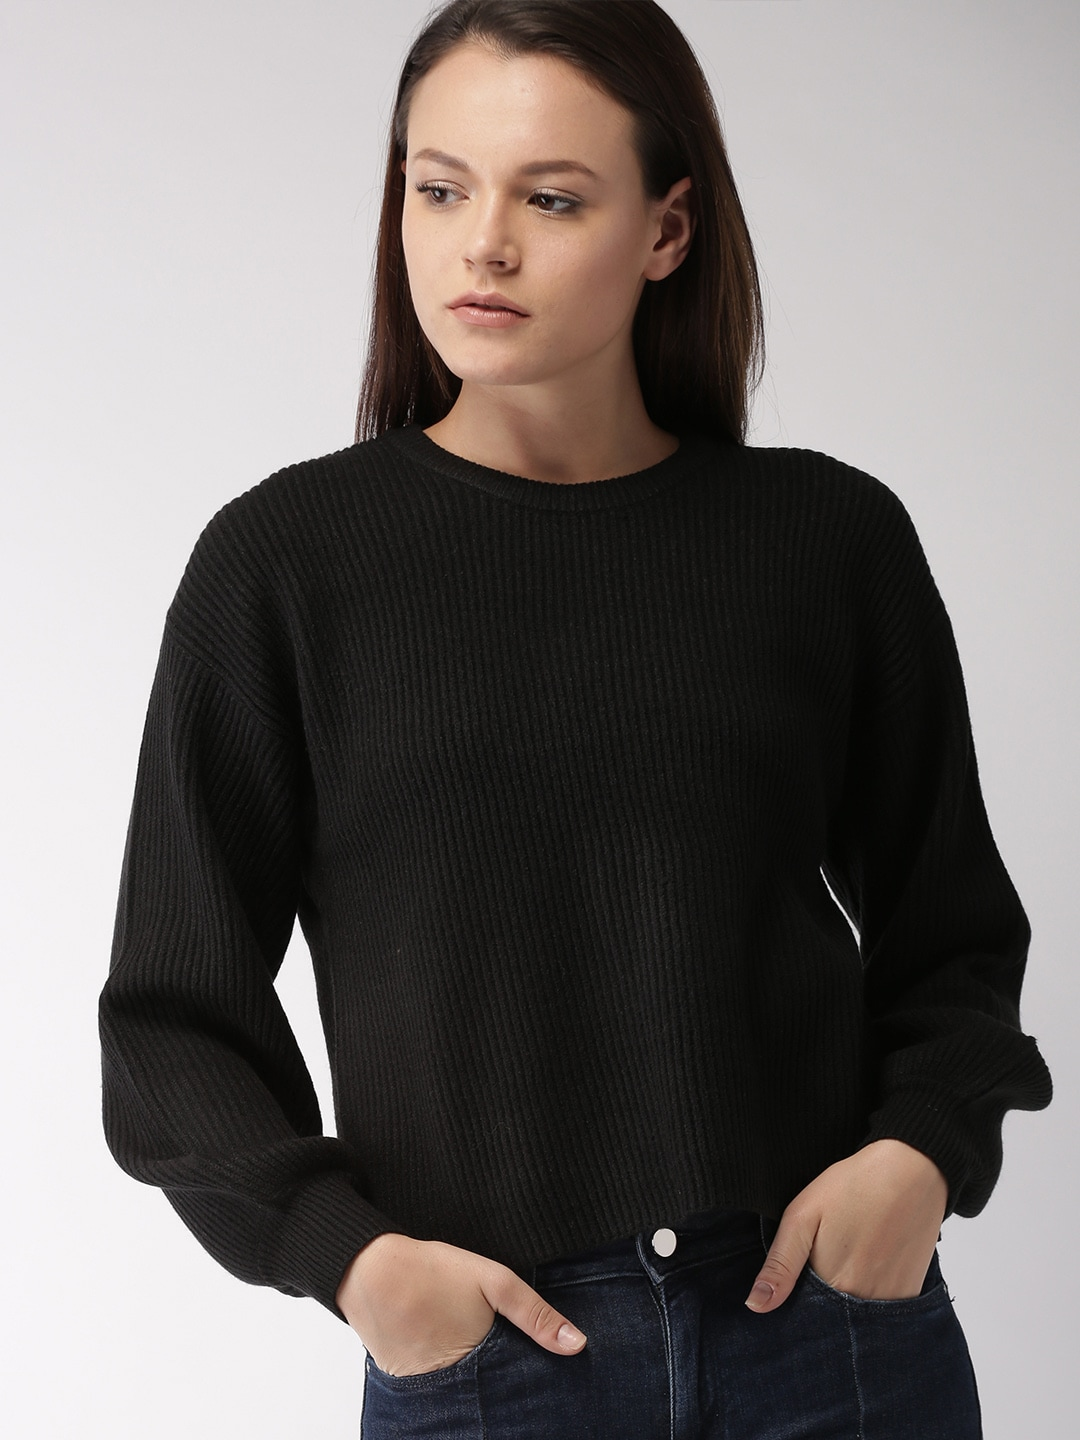 Forever 21 Sweaters - Buy Forever 21 Sweaters online in India a002a0f43